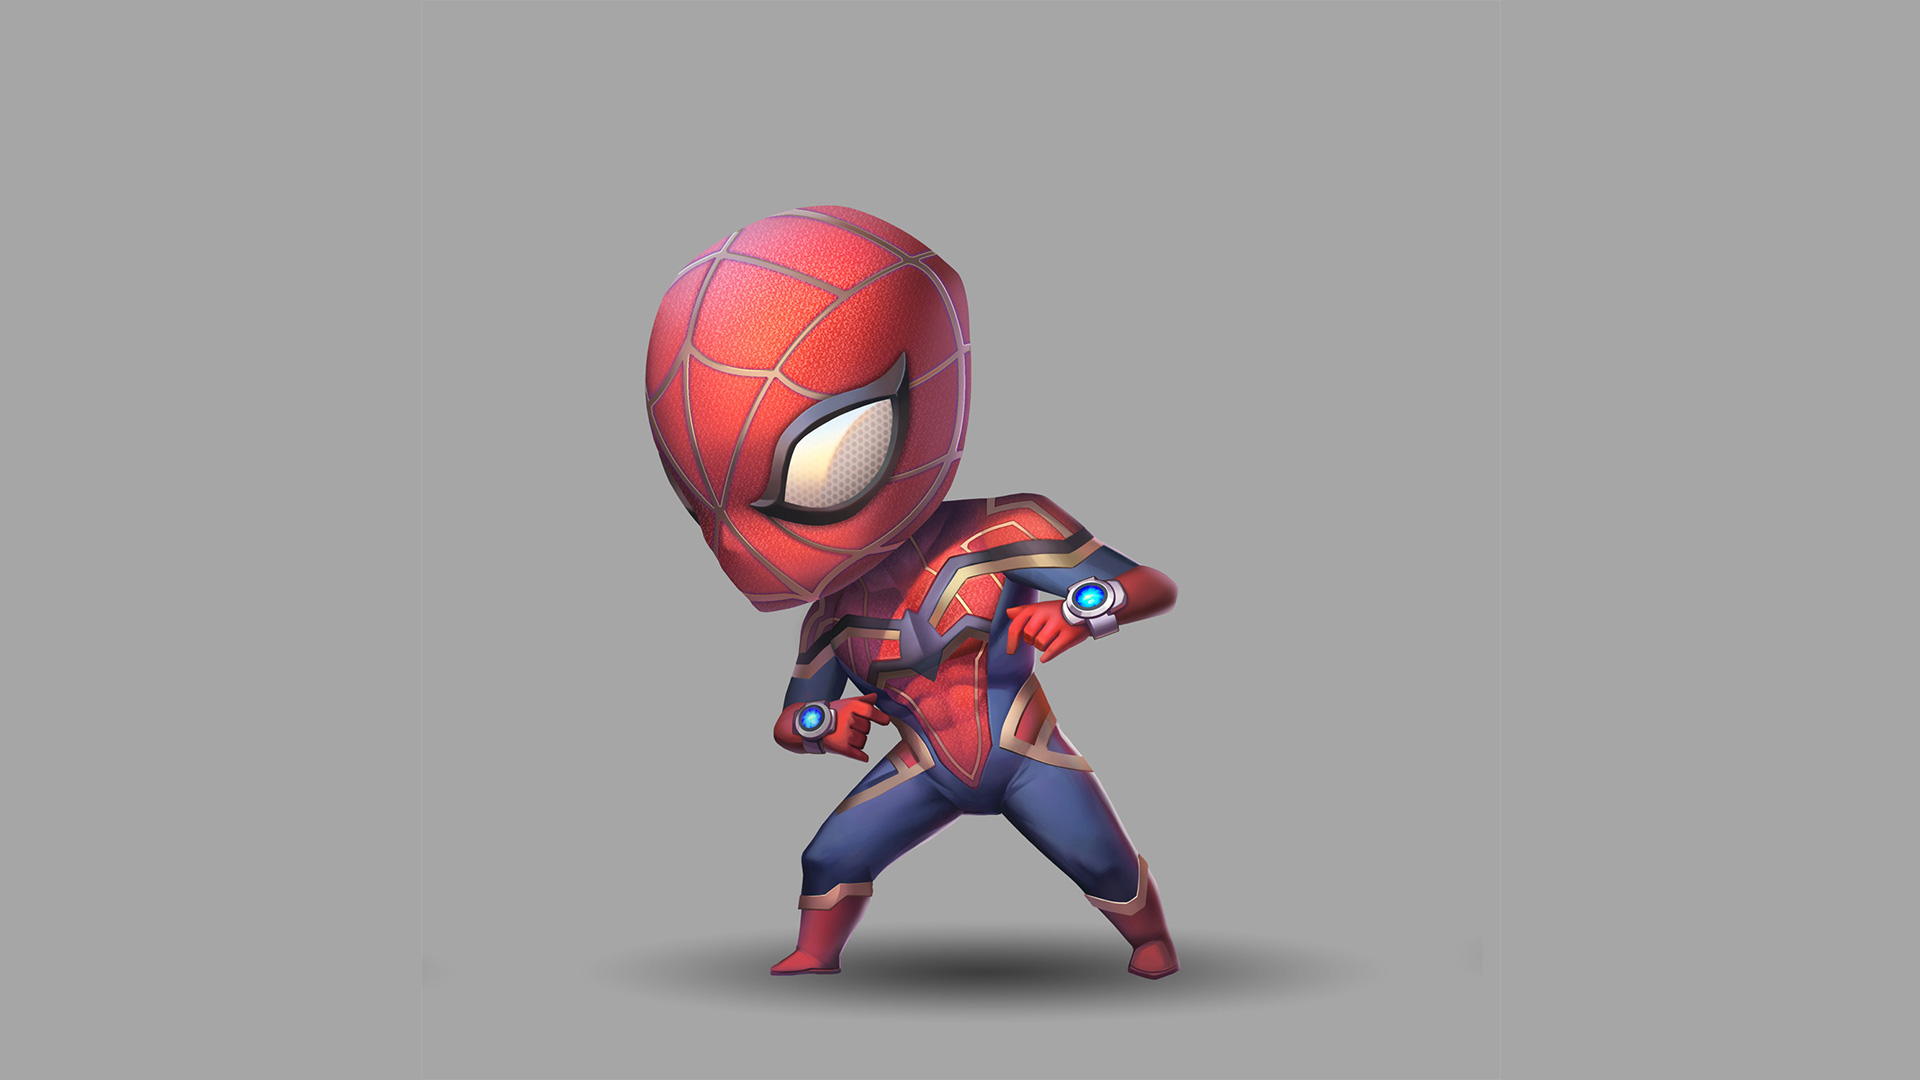 Free SpiderMan wallpaper